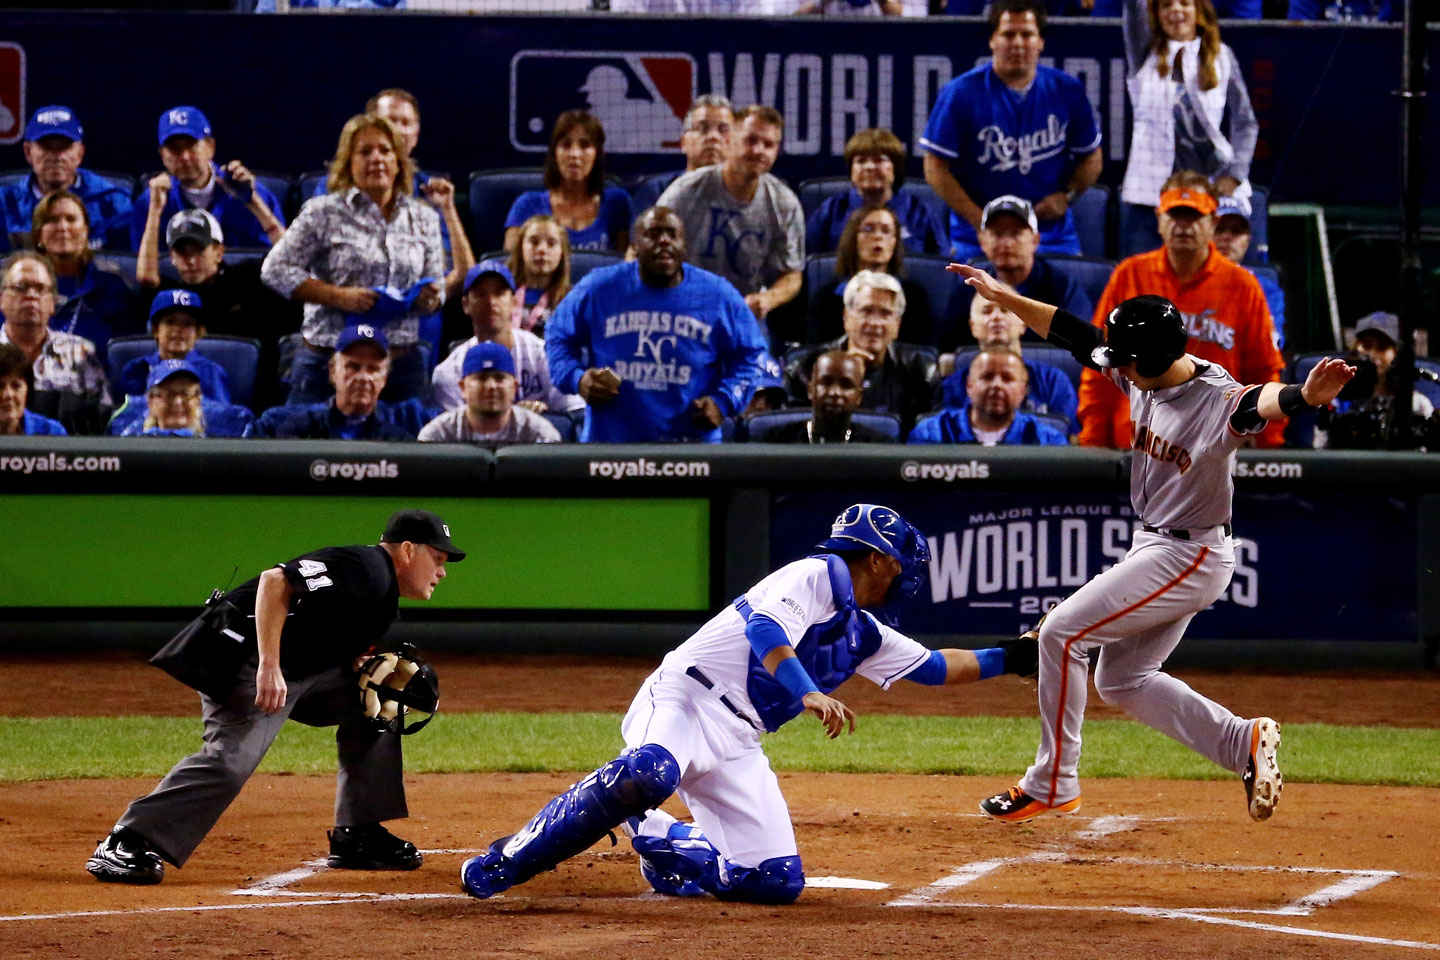 Buster Posey also tried to score on Sandoval's double in the top of the first, but was out by a mile. (Elsa/Getty Images)